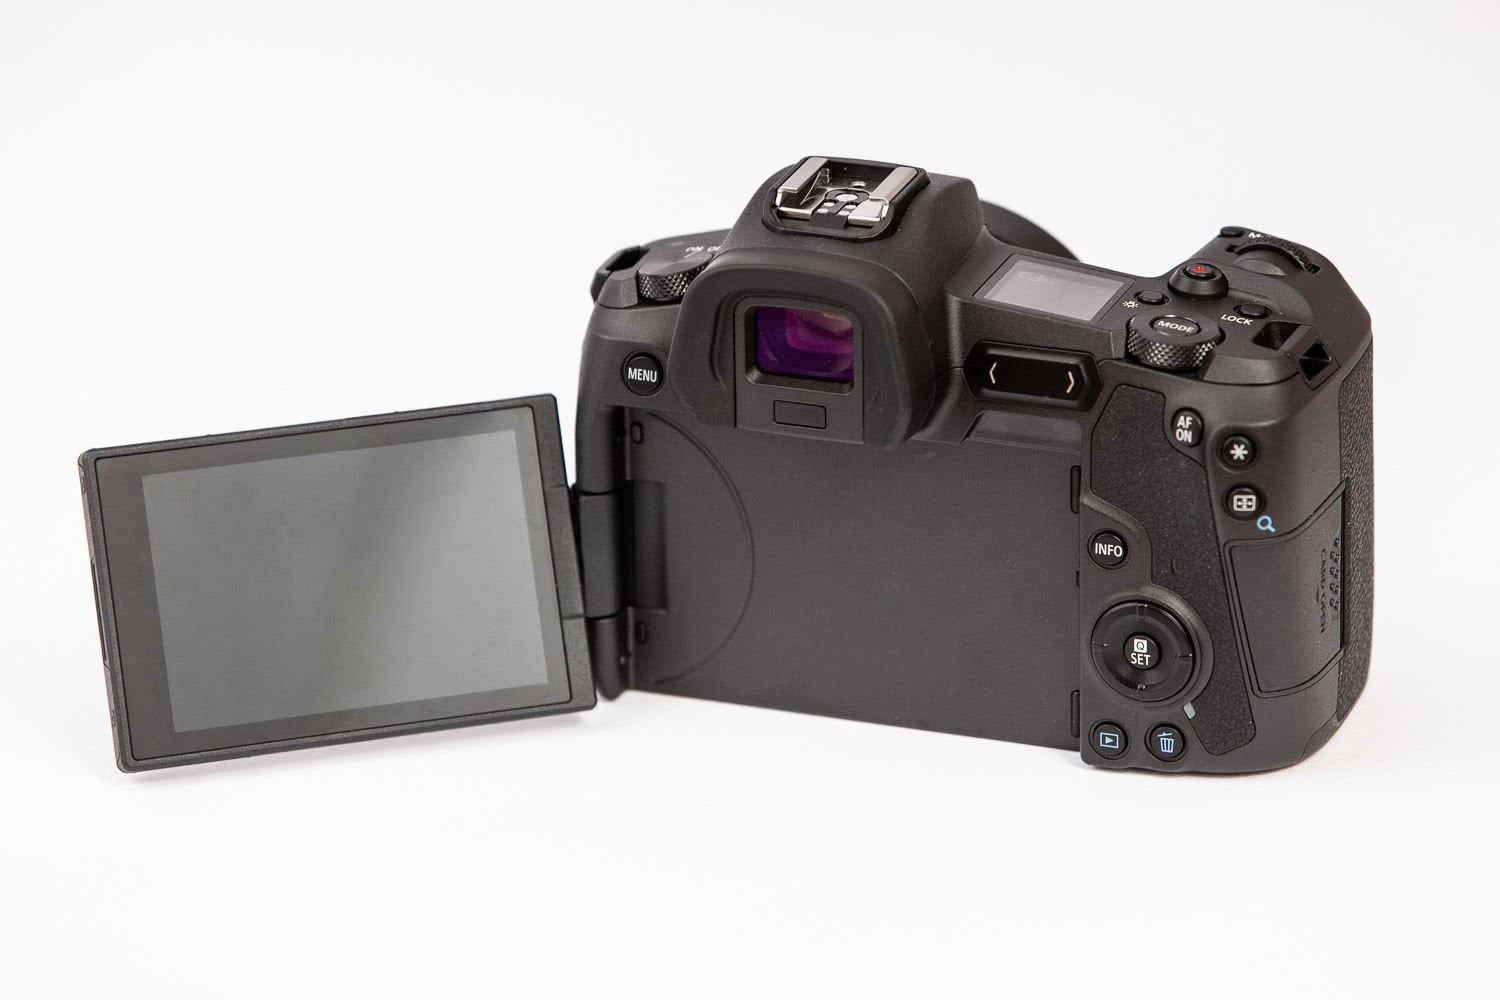 EOS R articulated touchscreen display